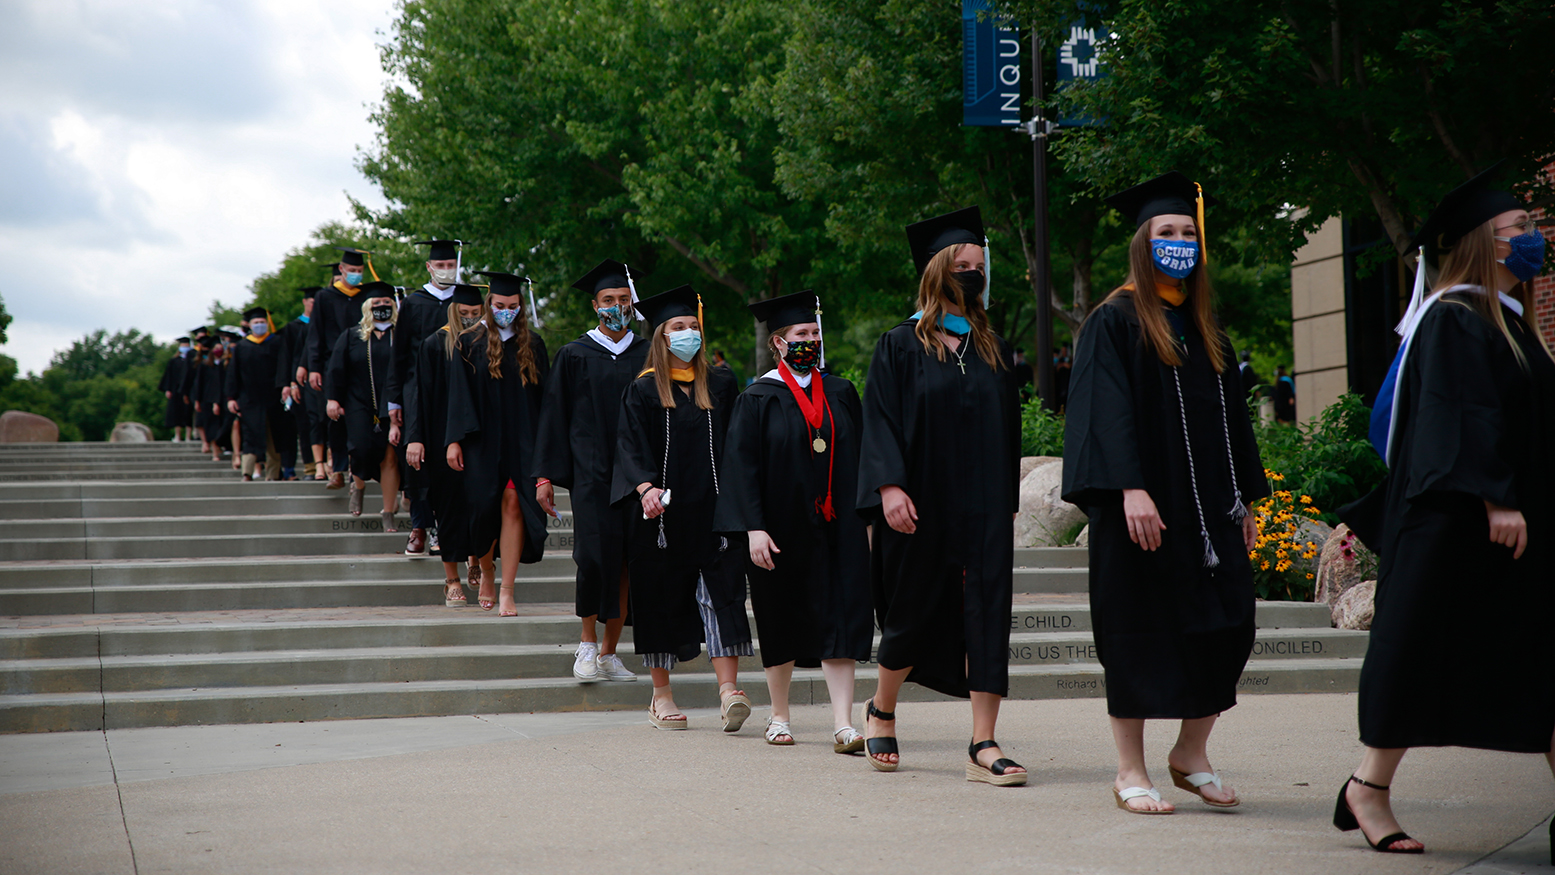 Concordia University, Nebraska Class of 2020 graduates walk through the plaza during the graduation processional.